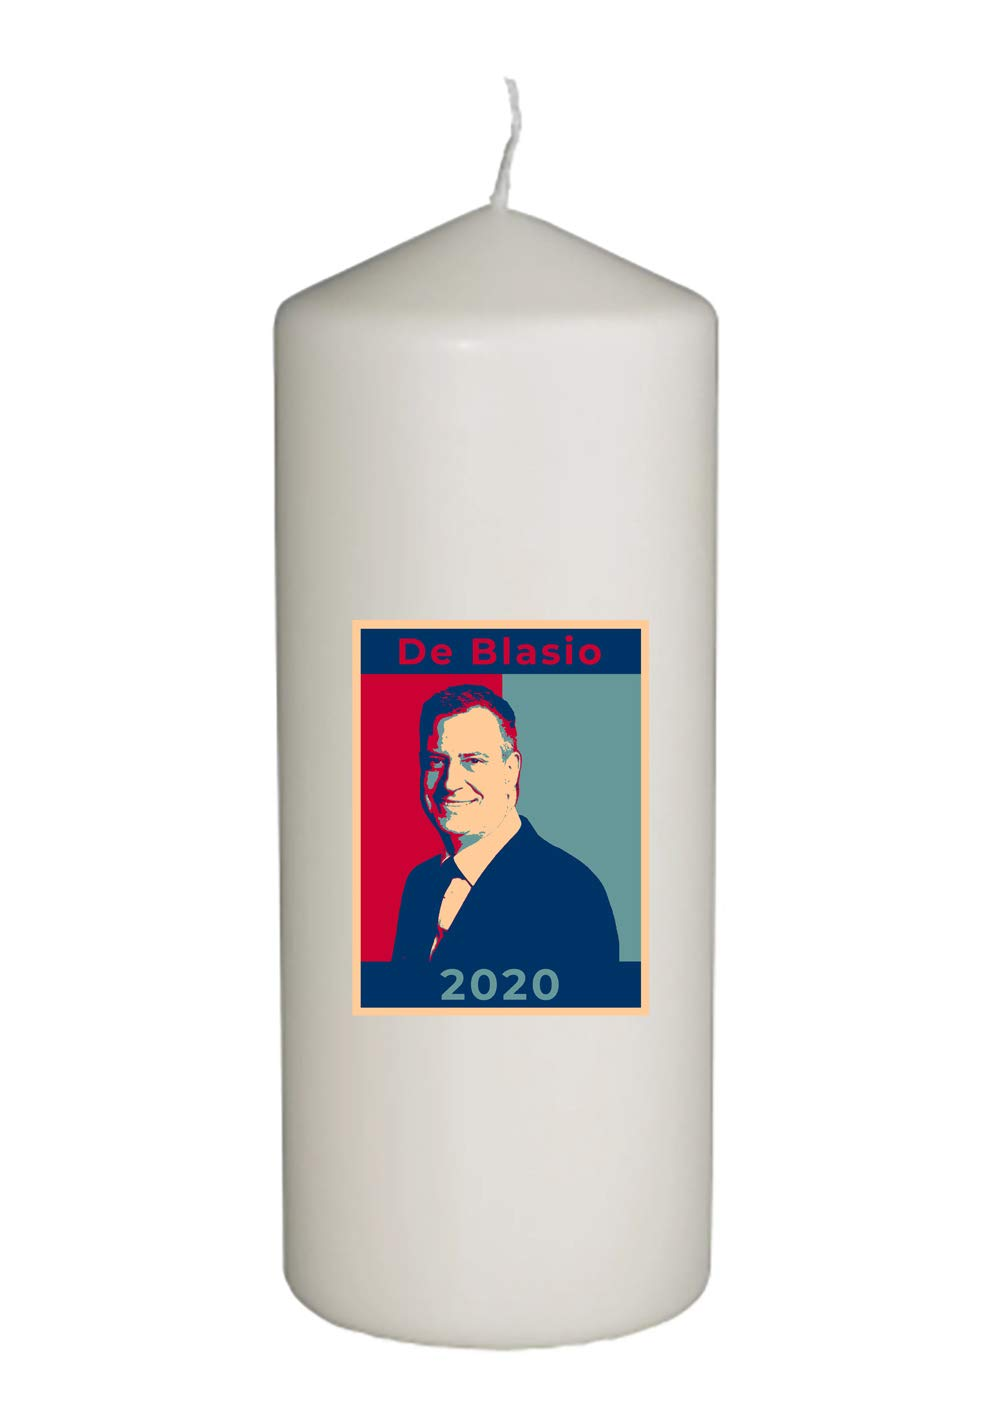 Hat Shark United States USA President Presidential Election Voting 2020 Bill De Blasio Democratic Party White House Candidates - Thick White in Full Color Unity Candle (De Blasio)